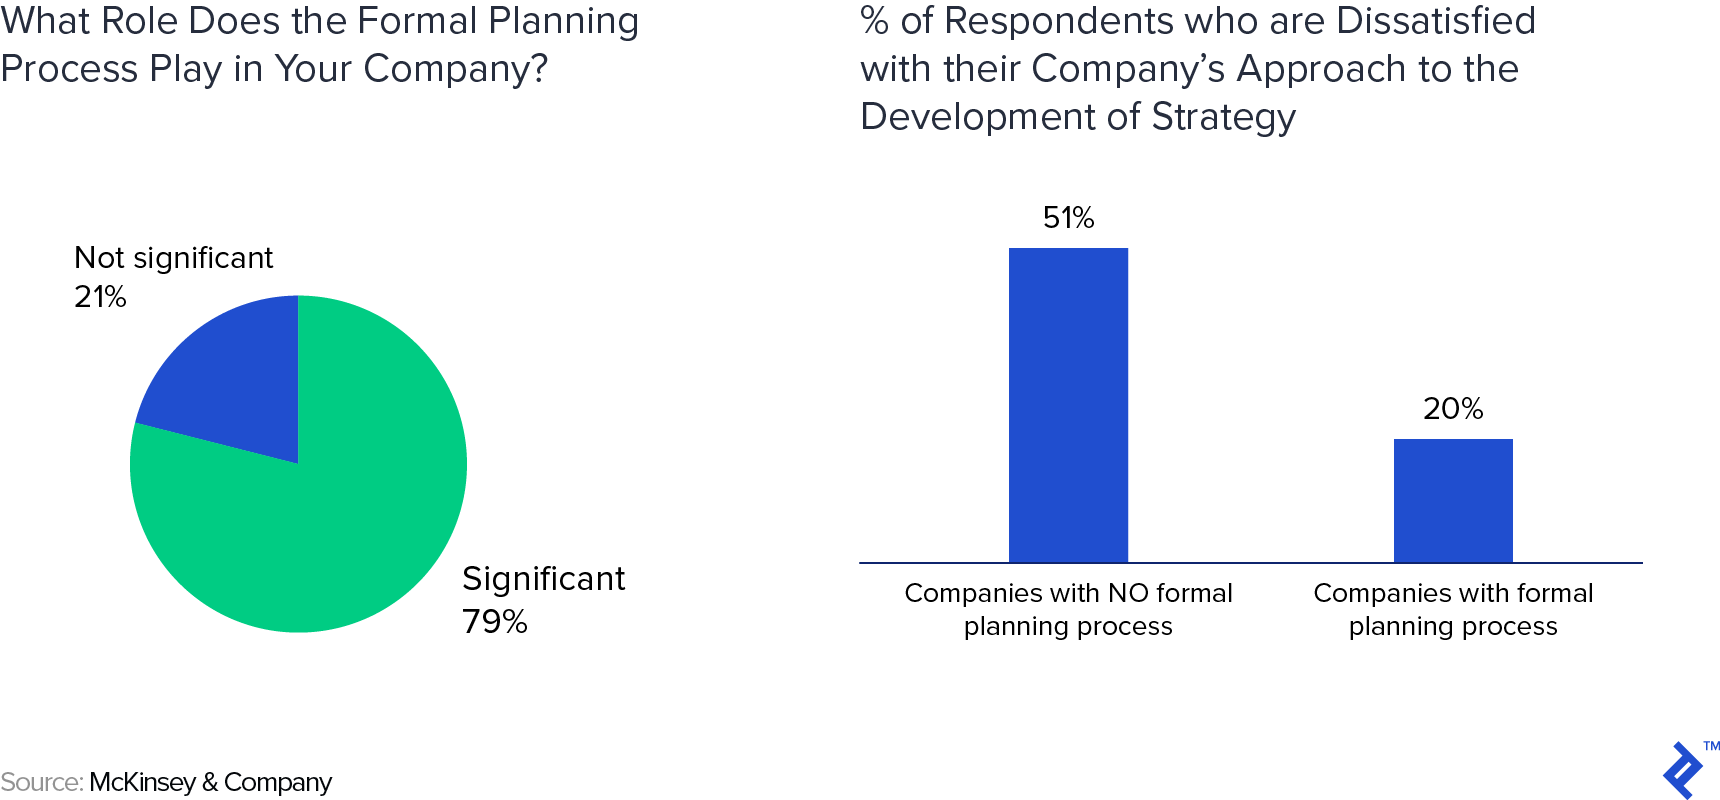 A chart of what role the formal planning process plays in a company next to a chart showing the percentage of respondents who are dissatisfied with their company's approach to the development of strategy